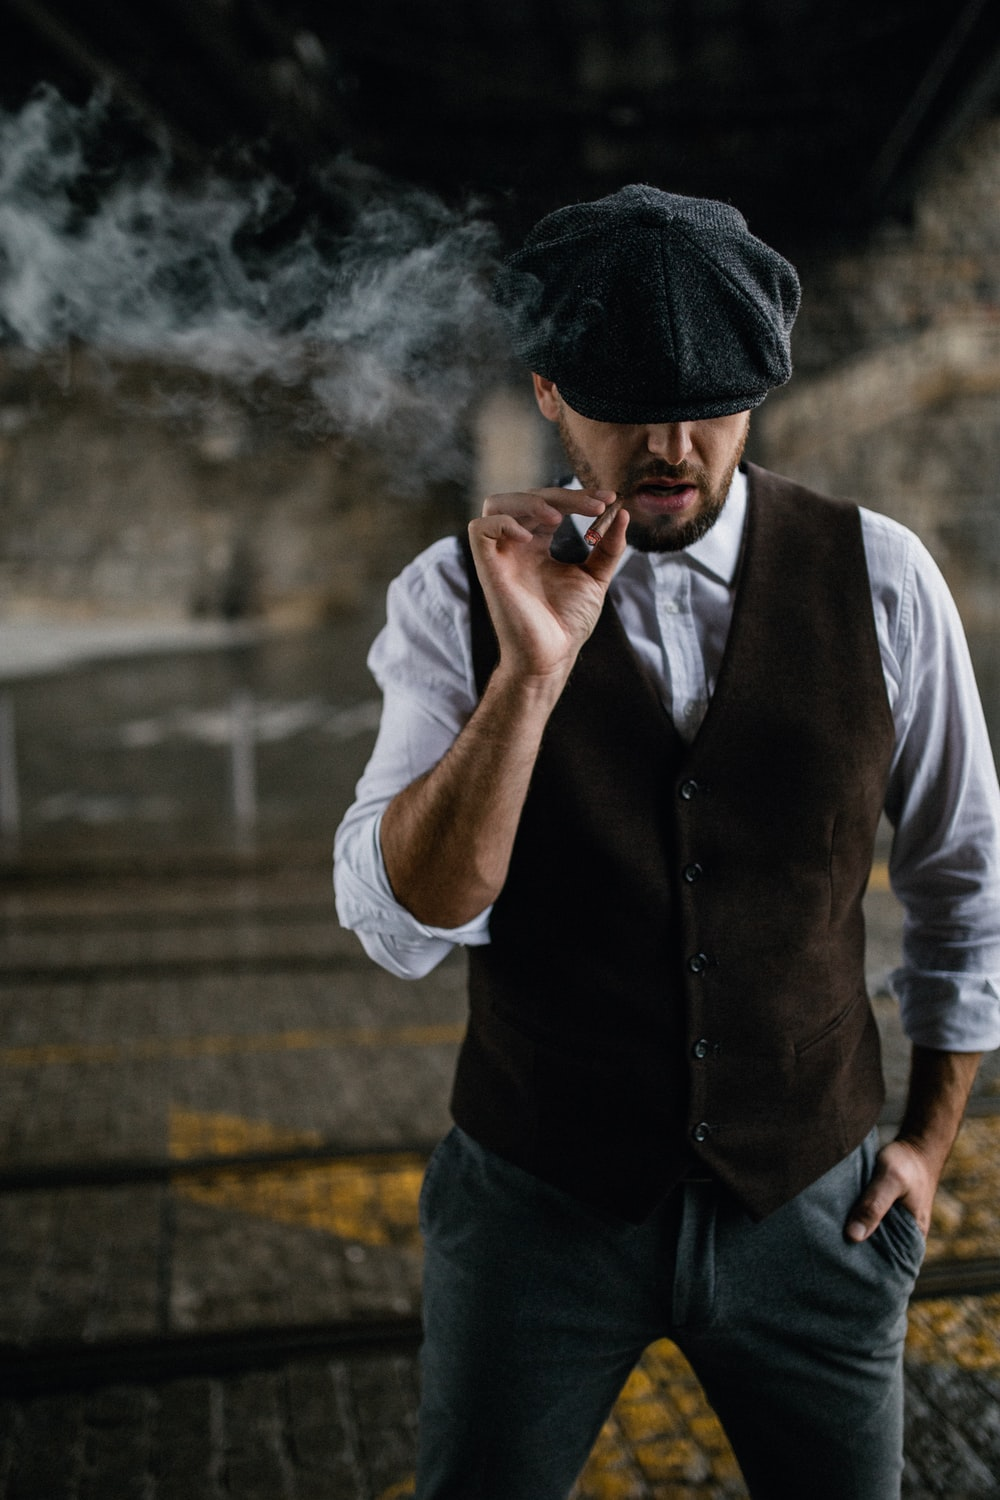 man in black vest and white dress shirt smoking cigarette